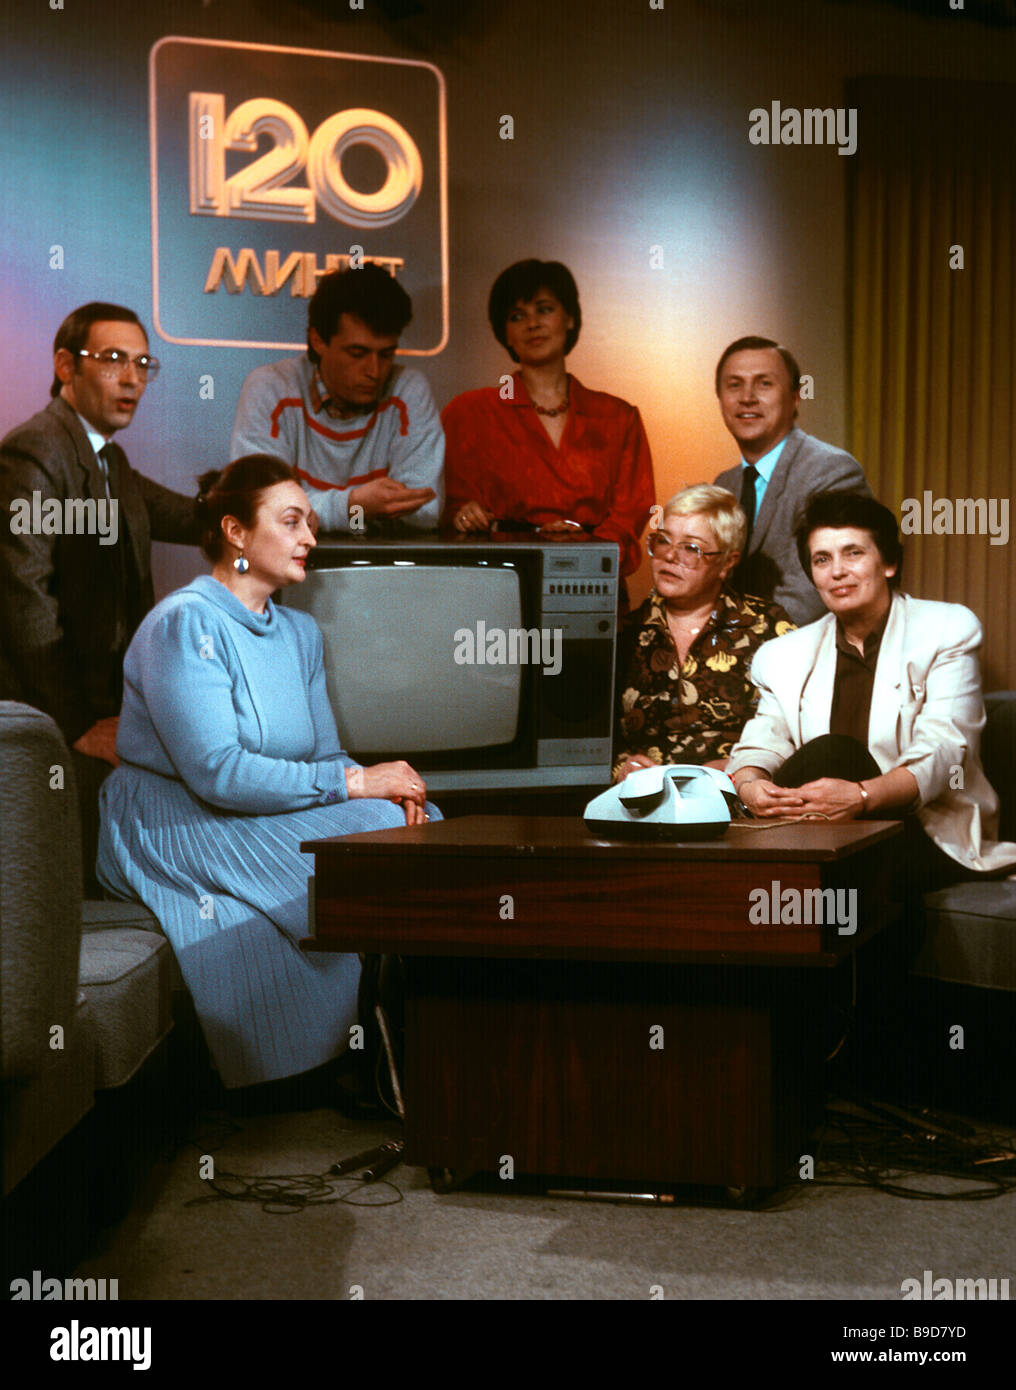 Production crew of 120 Minutes morning show at Central Television Network - Stock Image